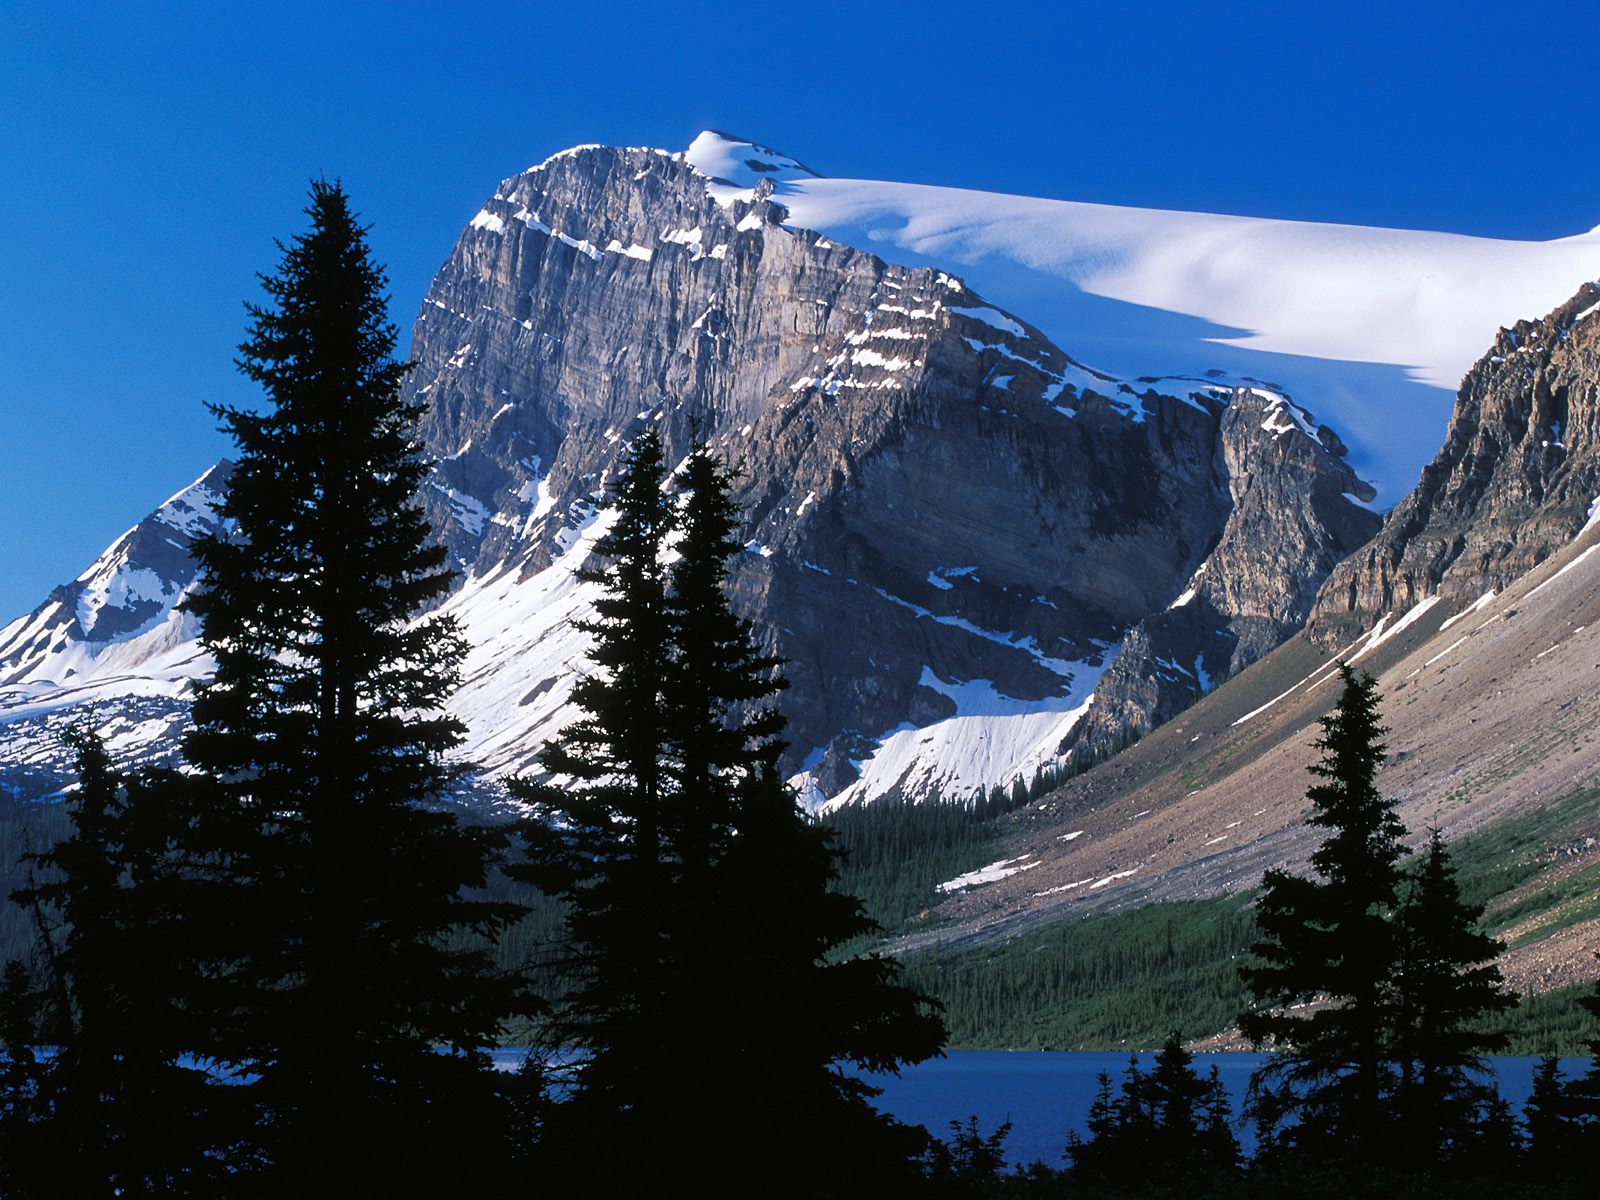 Mountain Peak Canada Wallpapers HD Wallpapers 1600x1200